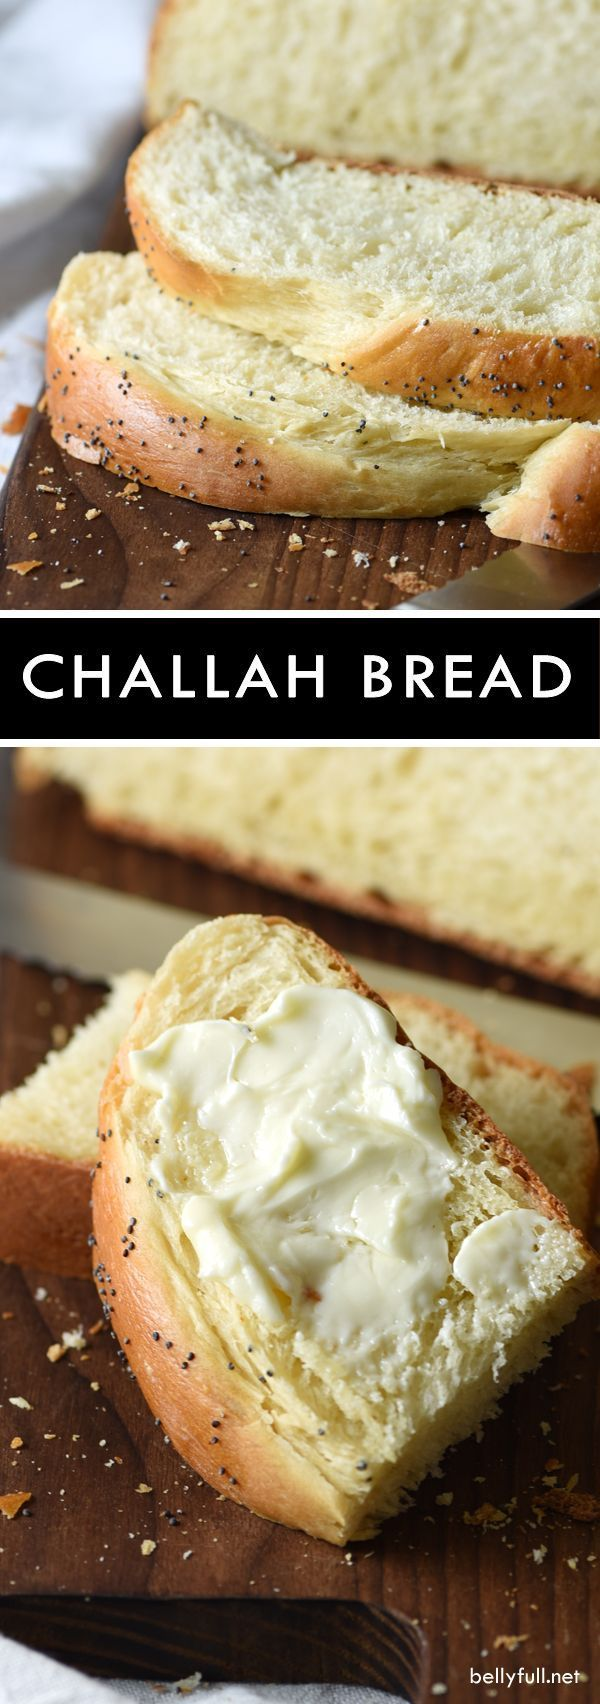 Challah bread - Challah is a rich and slightly sweet pillow-y bread that is both a pleasure to eat and to look at. Sounds fancy, but is actually really easy to make!